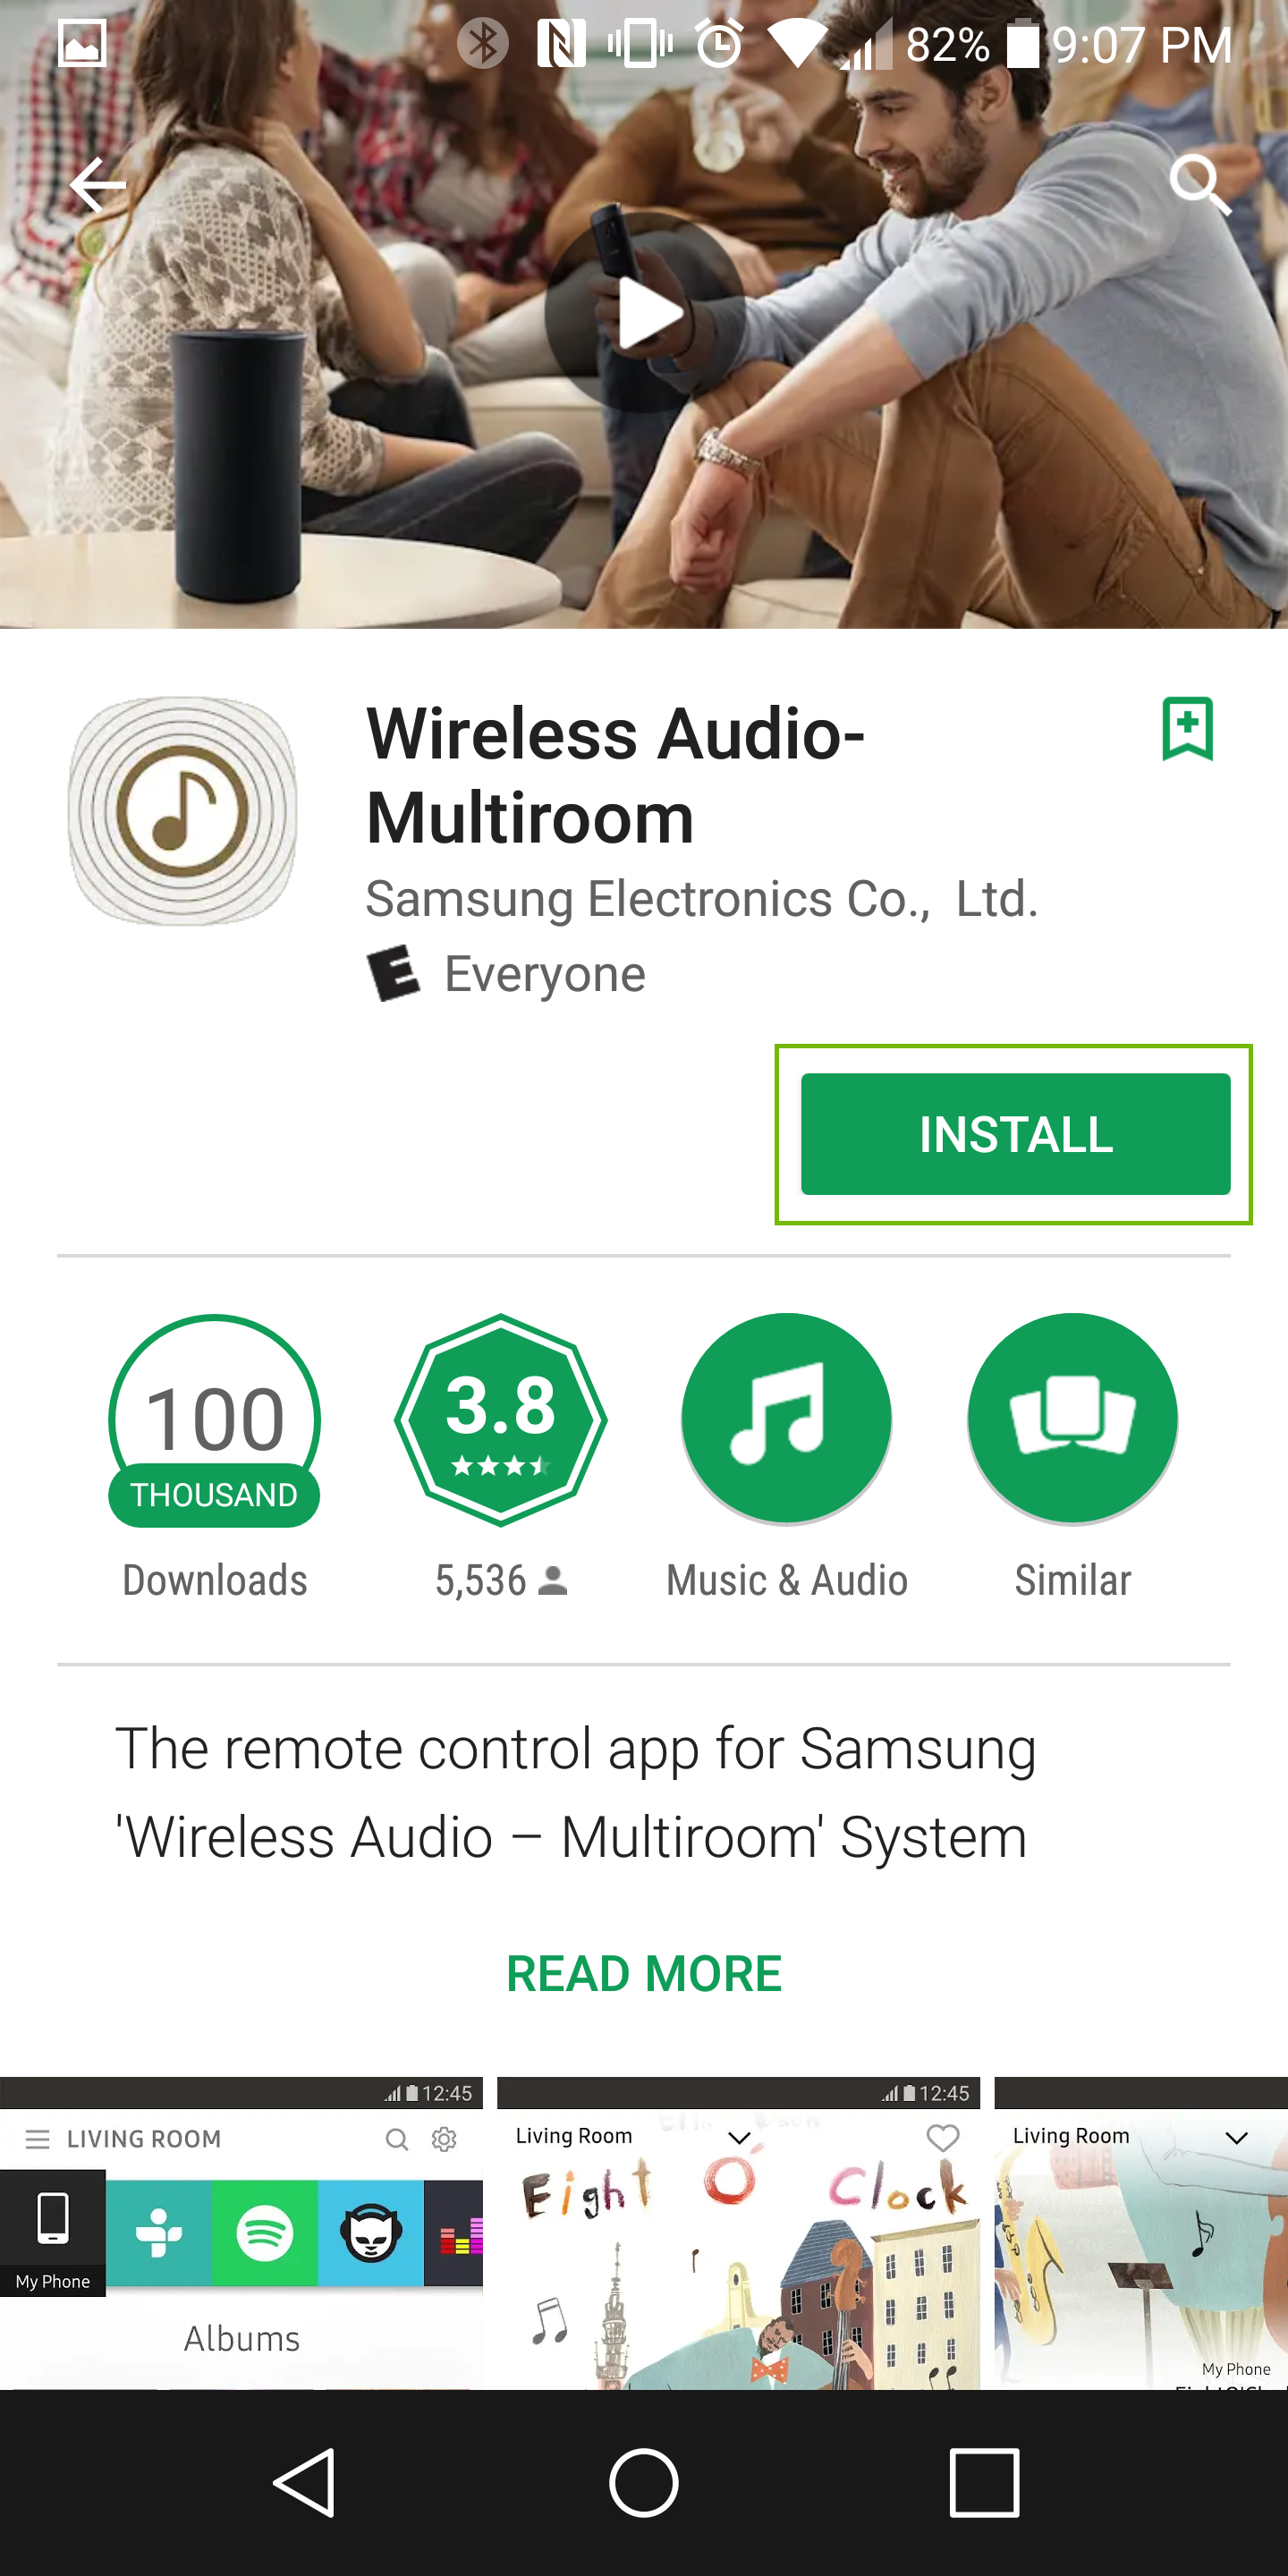 Wireles Audio-Multiroom app page with install highlighted